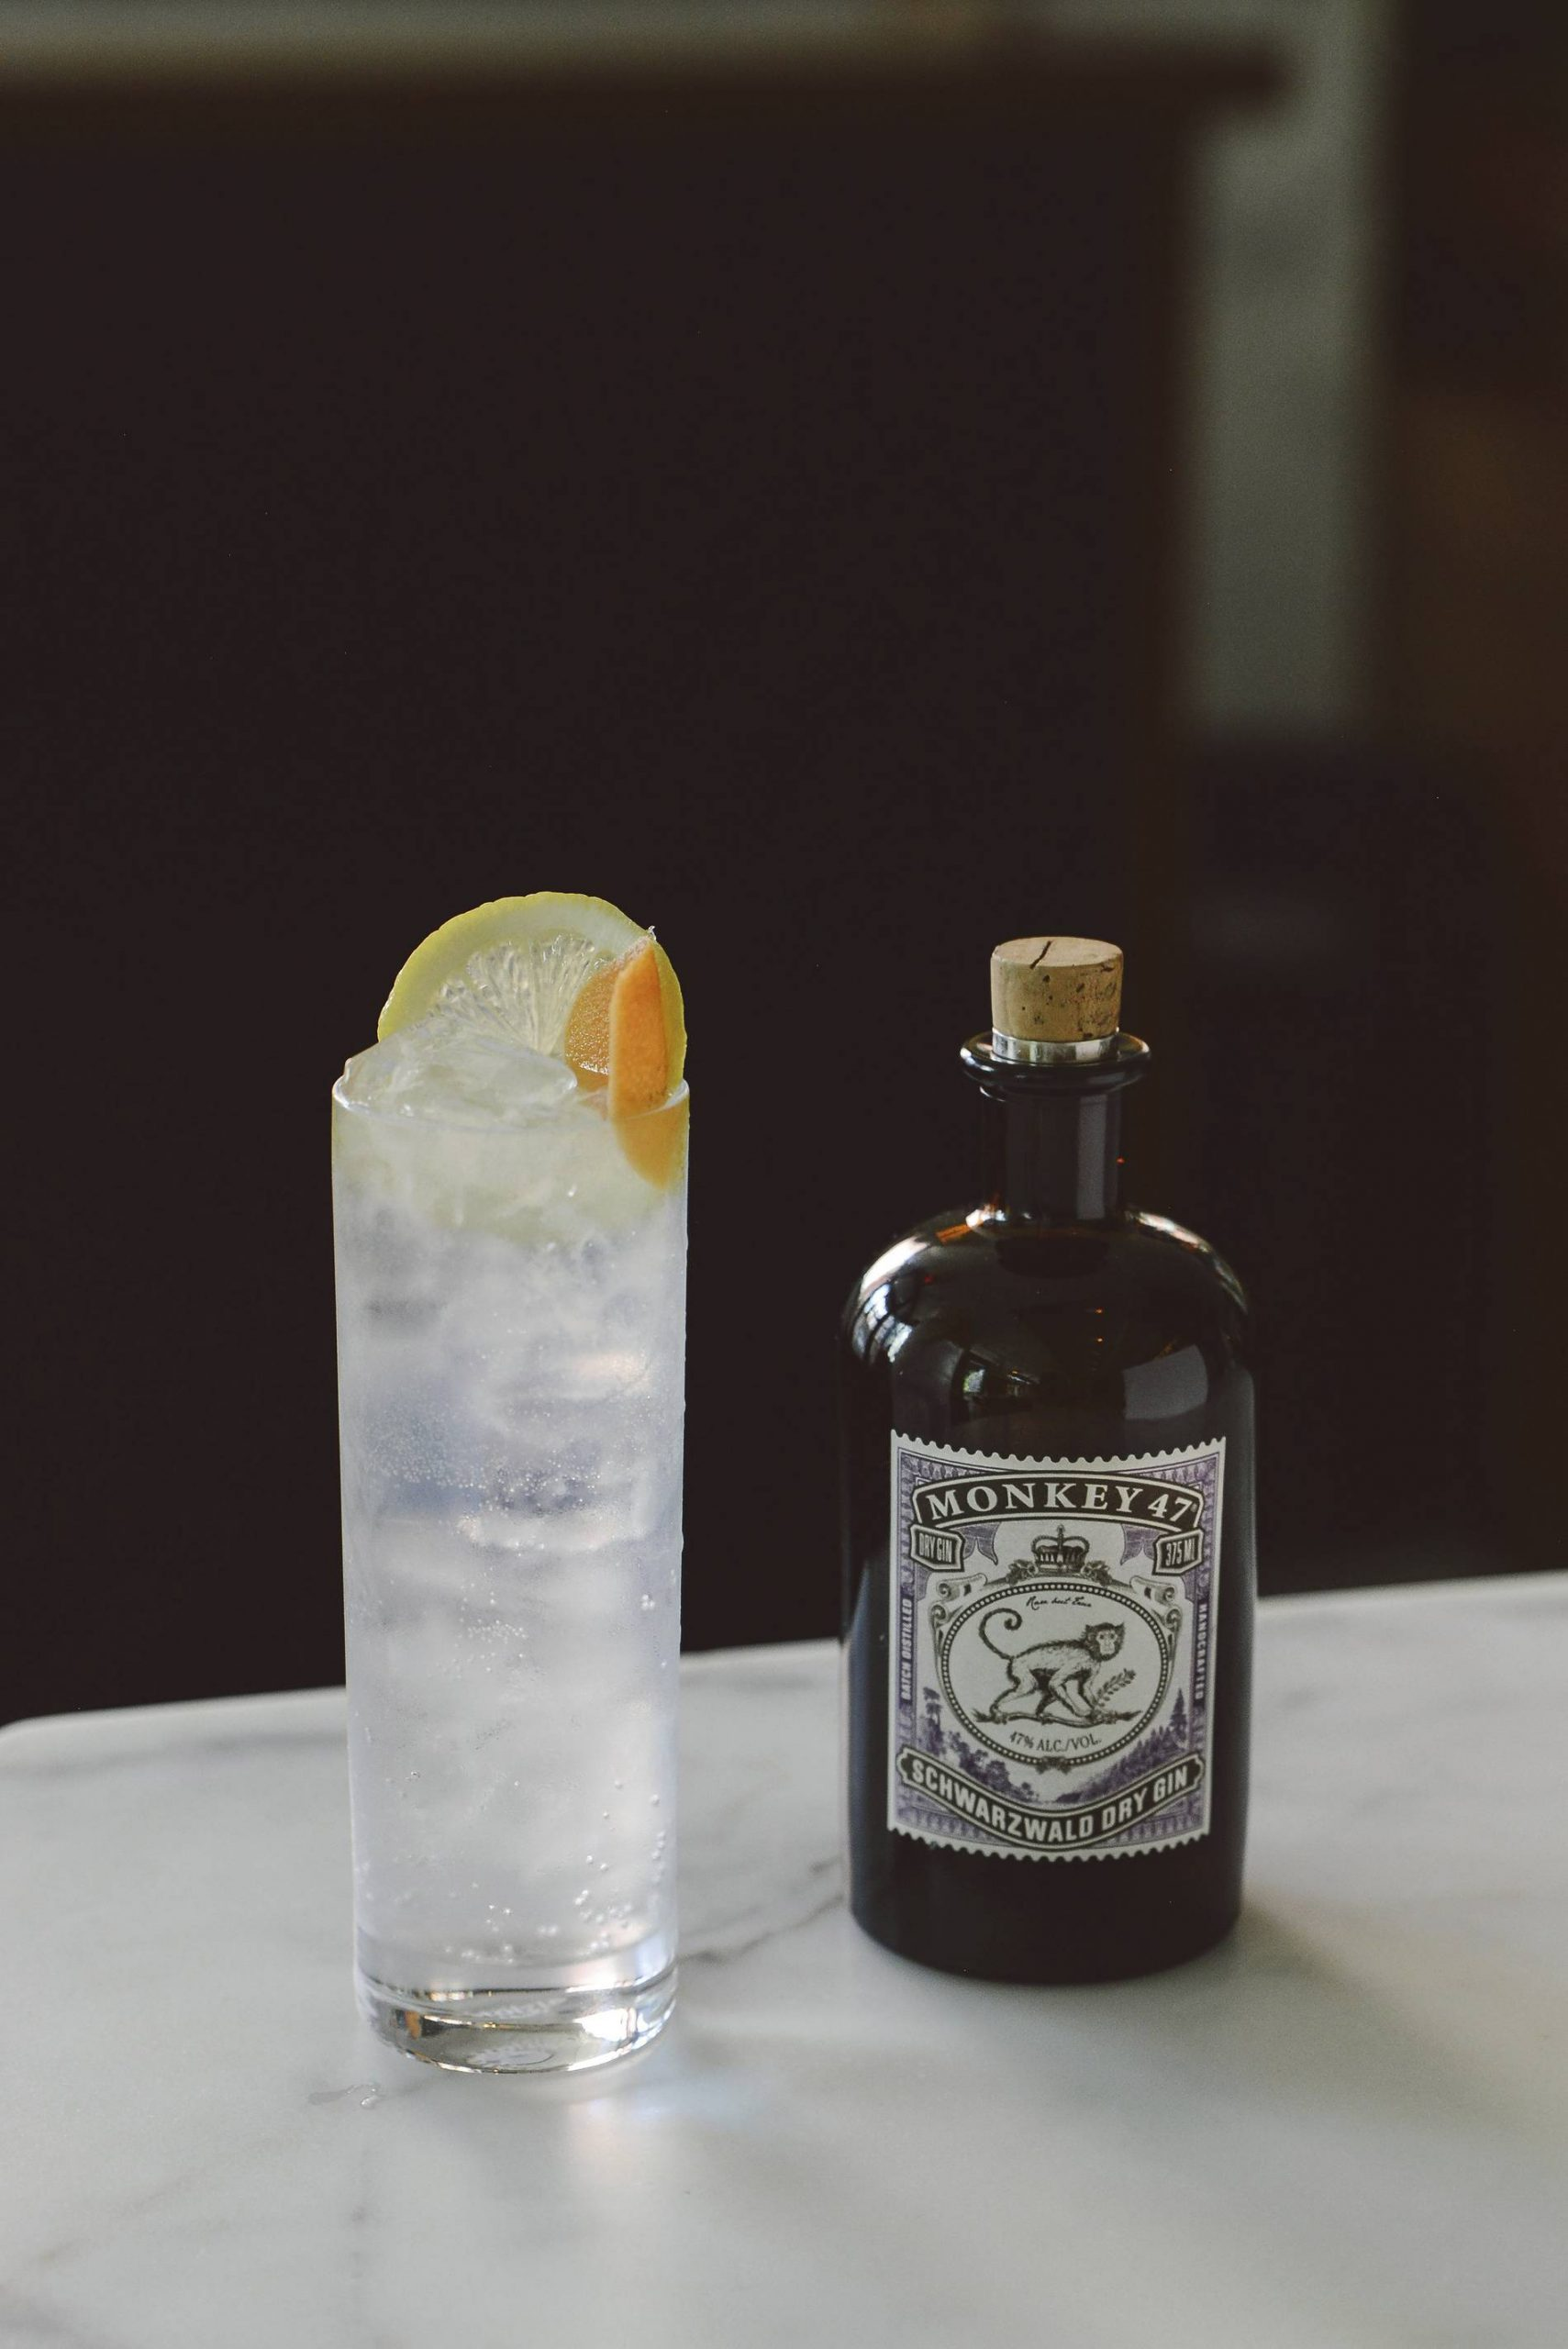 Monkey 47 Puts A Spin On A G&t With This Recipe photo